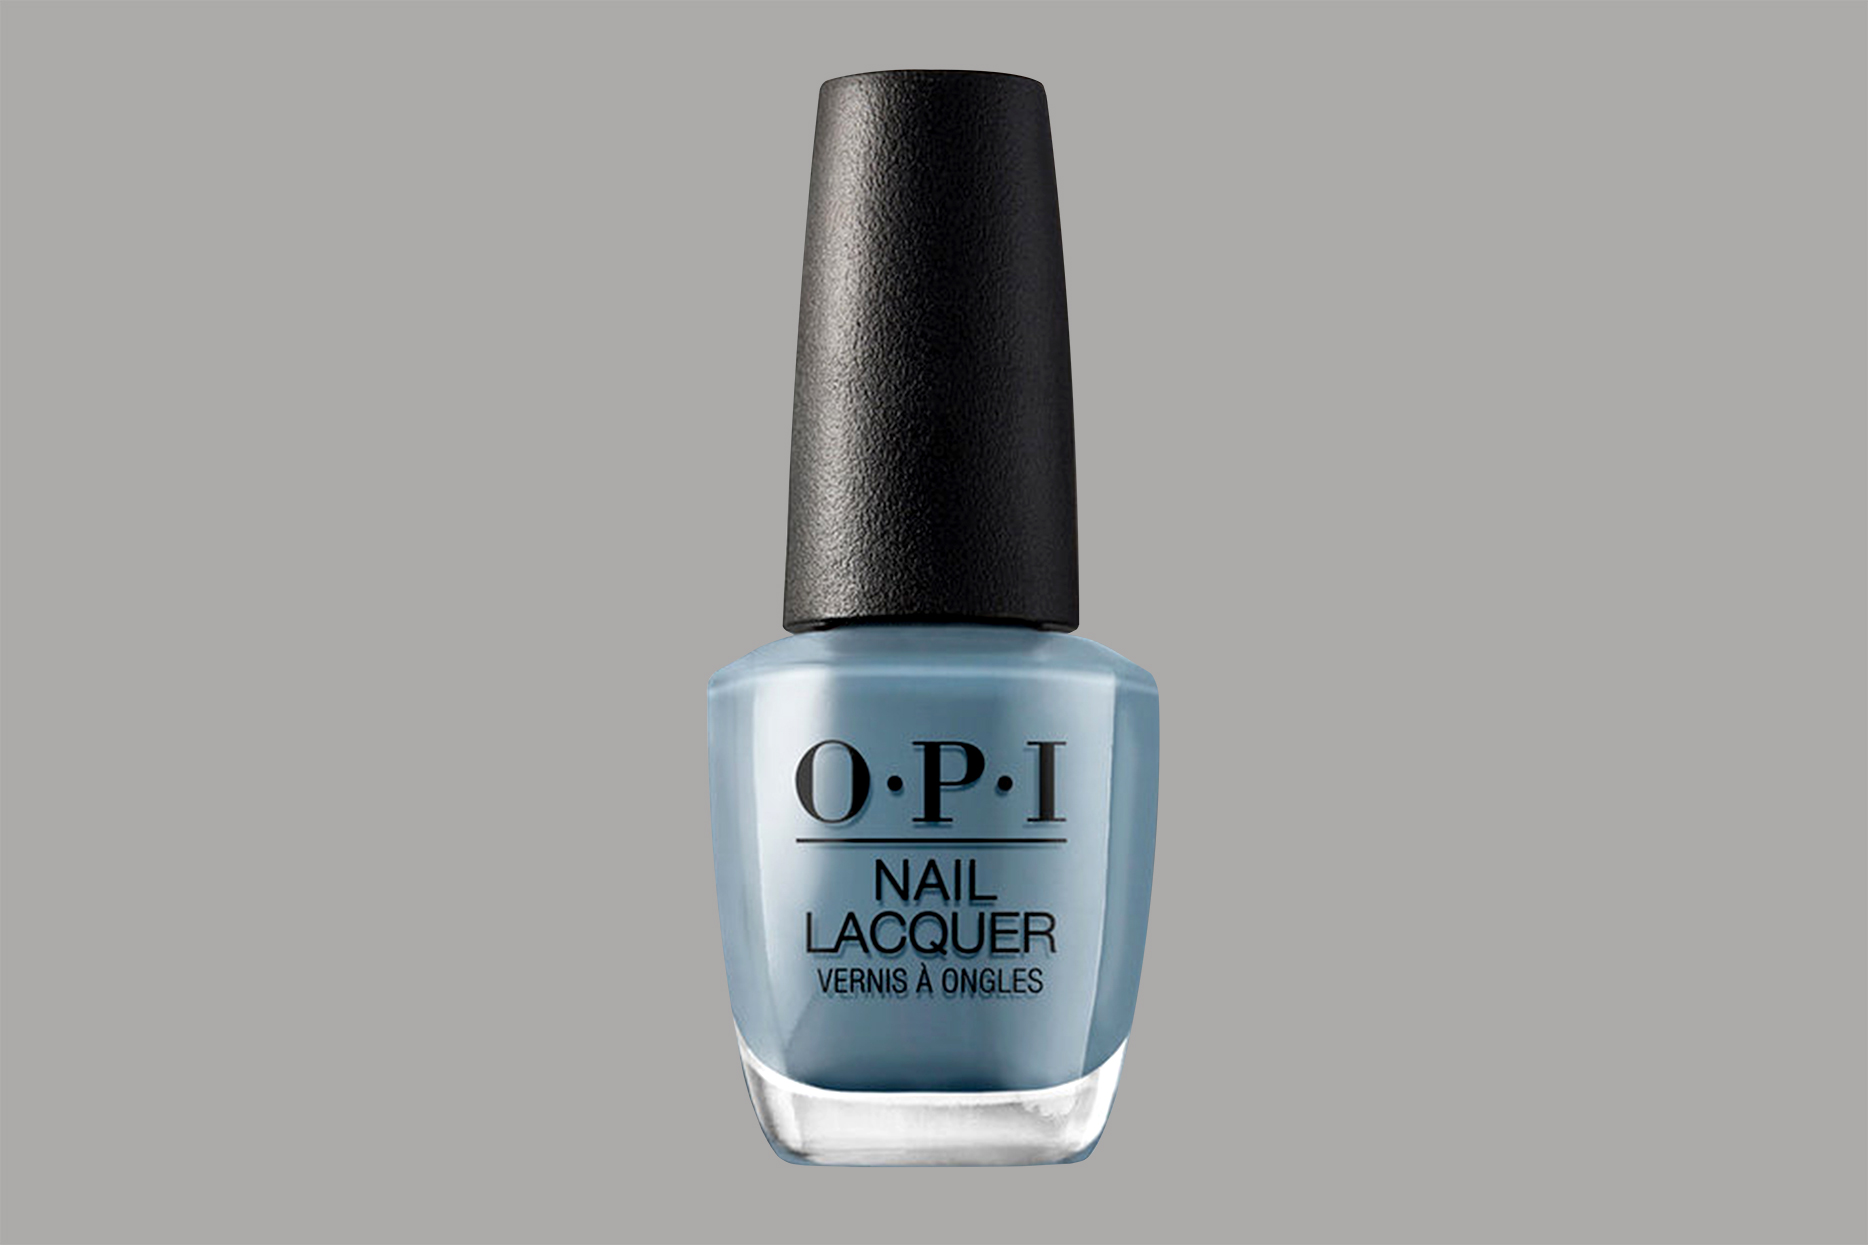 OPI Nail Lacquer in Alpaca My Bags